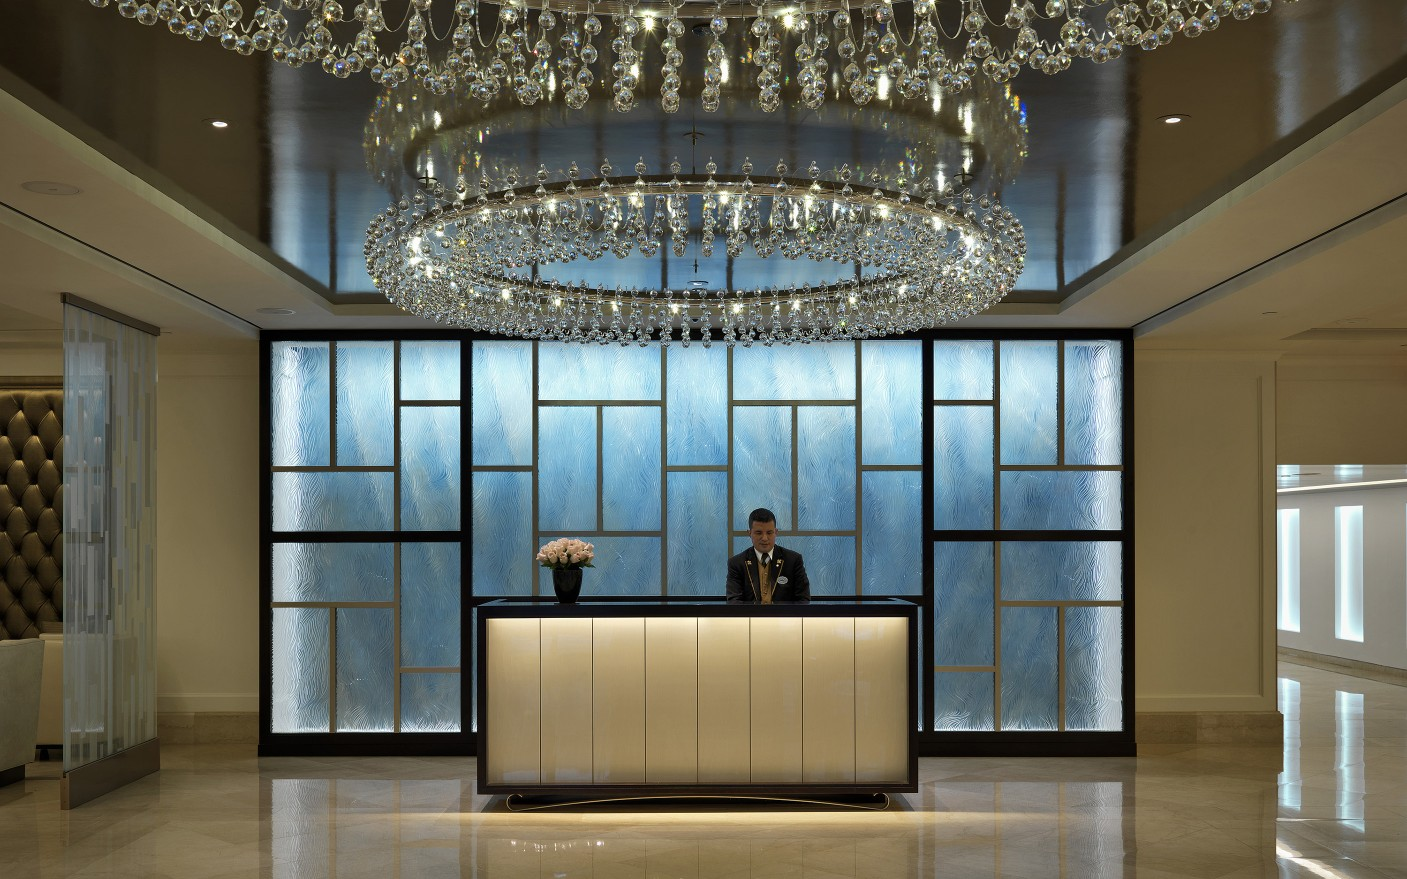 To modernize the Langham Hotel lobby, Horton Lees Brogden used Lumenfacade fixtures in the feature wall.